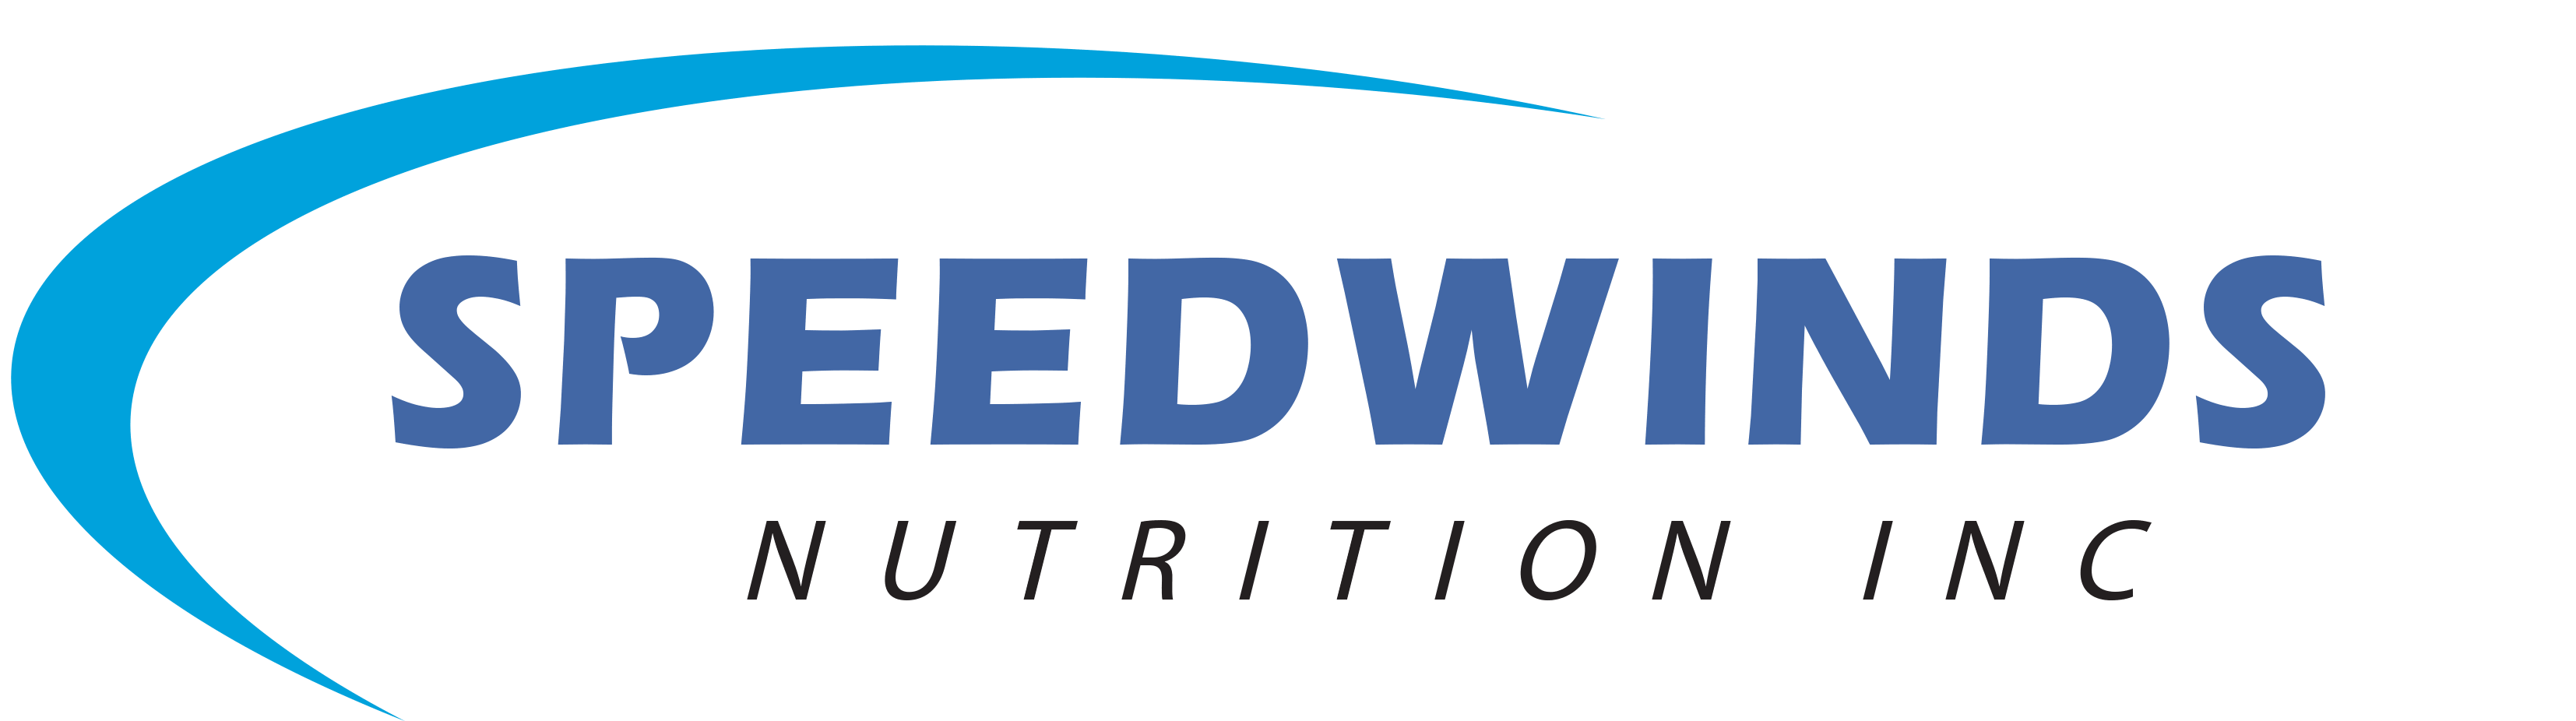 Speedwinds Nutrition, Inc.